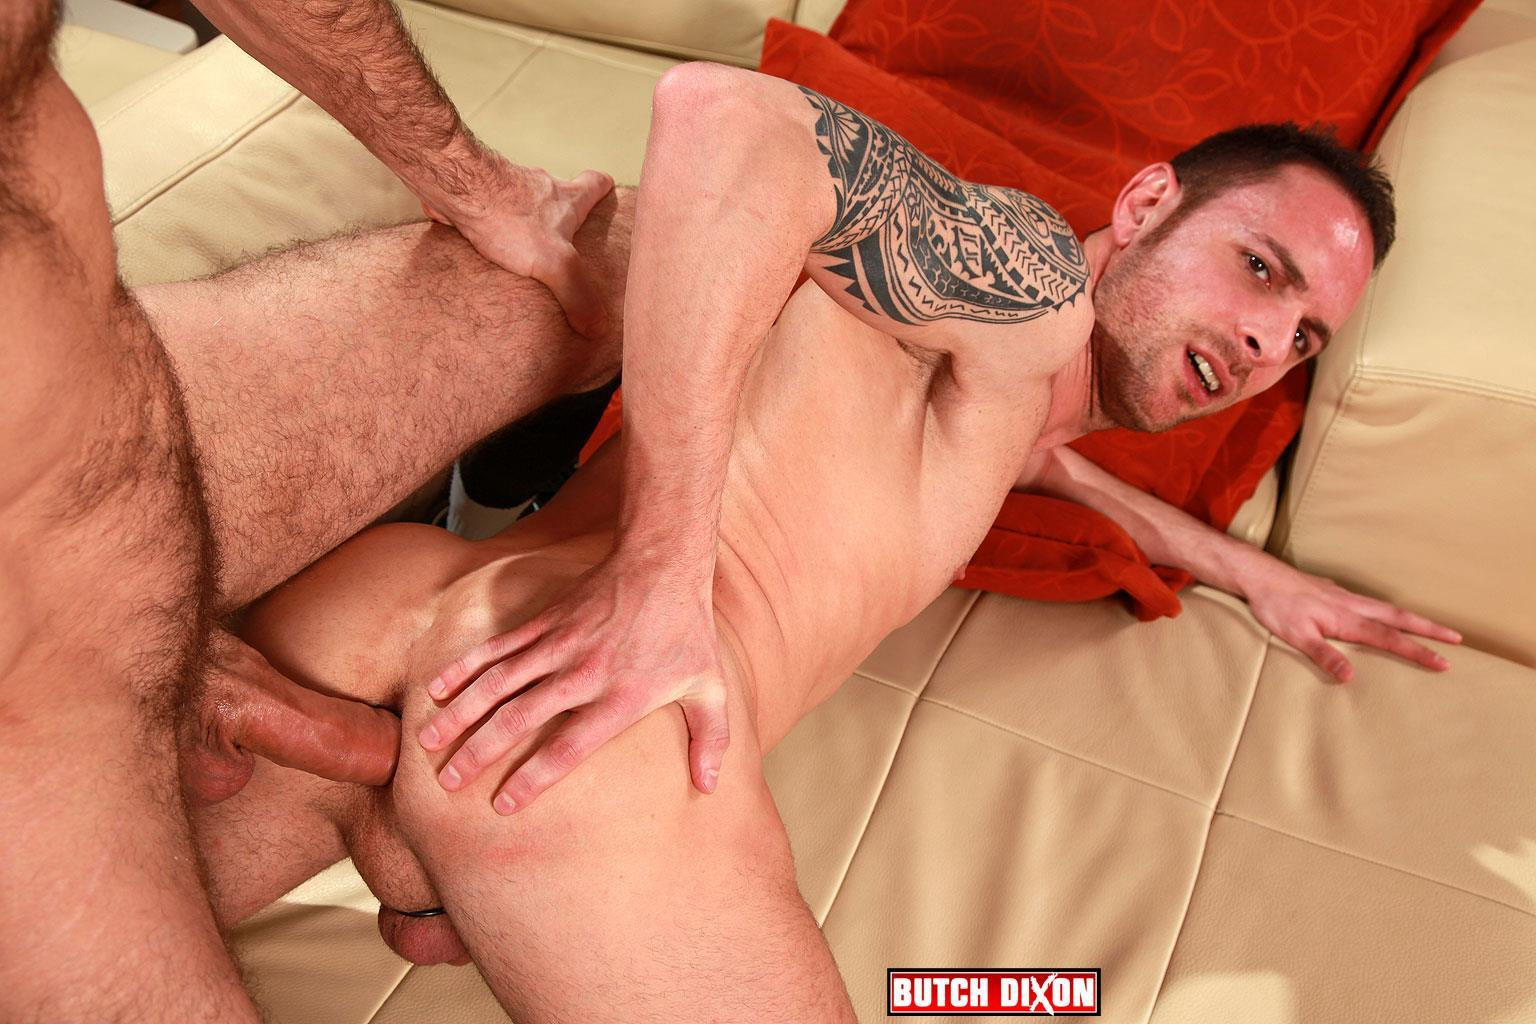 Butch Dixon Aitor Bravo and Craig Daniel Big Uncut Cock Barebacking Breeding BBBH Amateur Gay Porn 10 Craig Daniel Barebacking Aitor Bravo With His Huge Uncut Cock